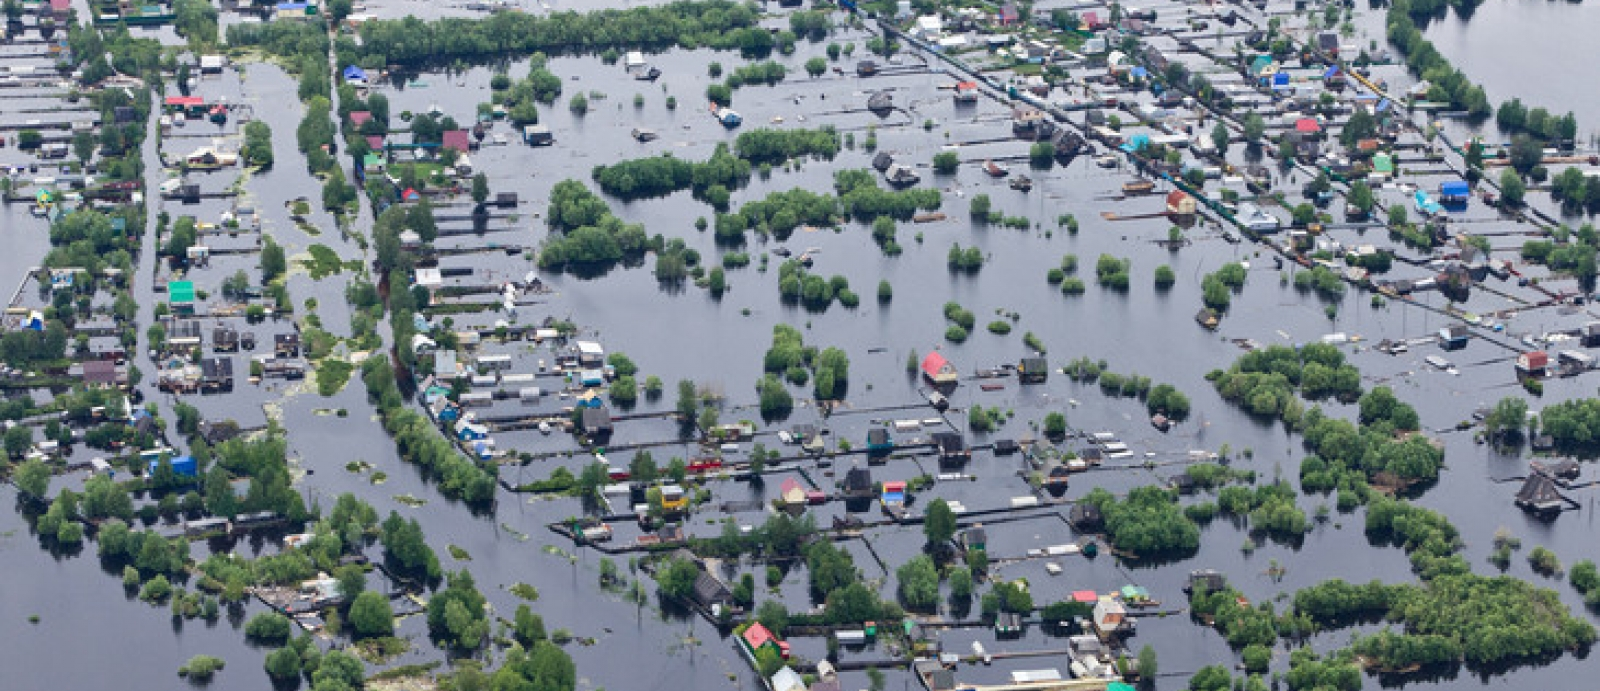 Students in the College of Information Sciences and Technology have developed a computer model that could help classify images of disaster scenes, such as a flood, to aid emergency response. Image: Vladimir Melnikov - Adobe Stock